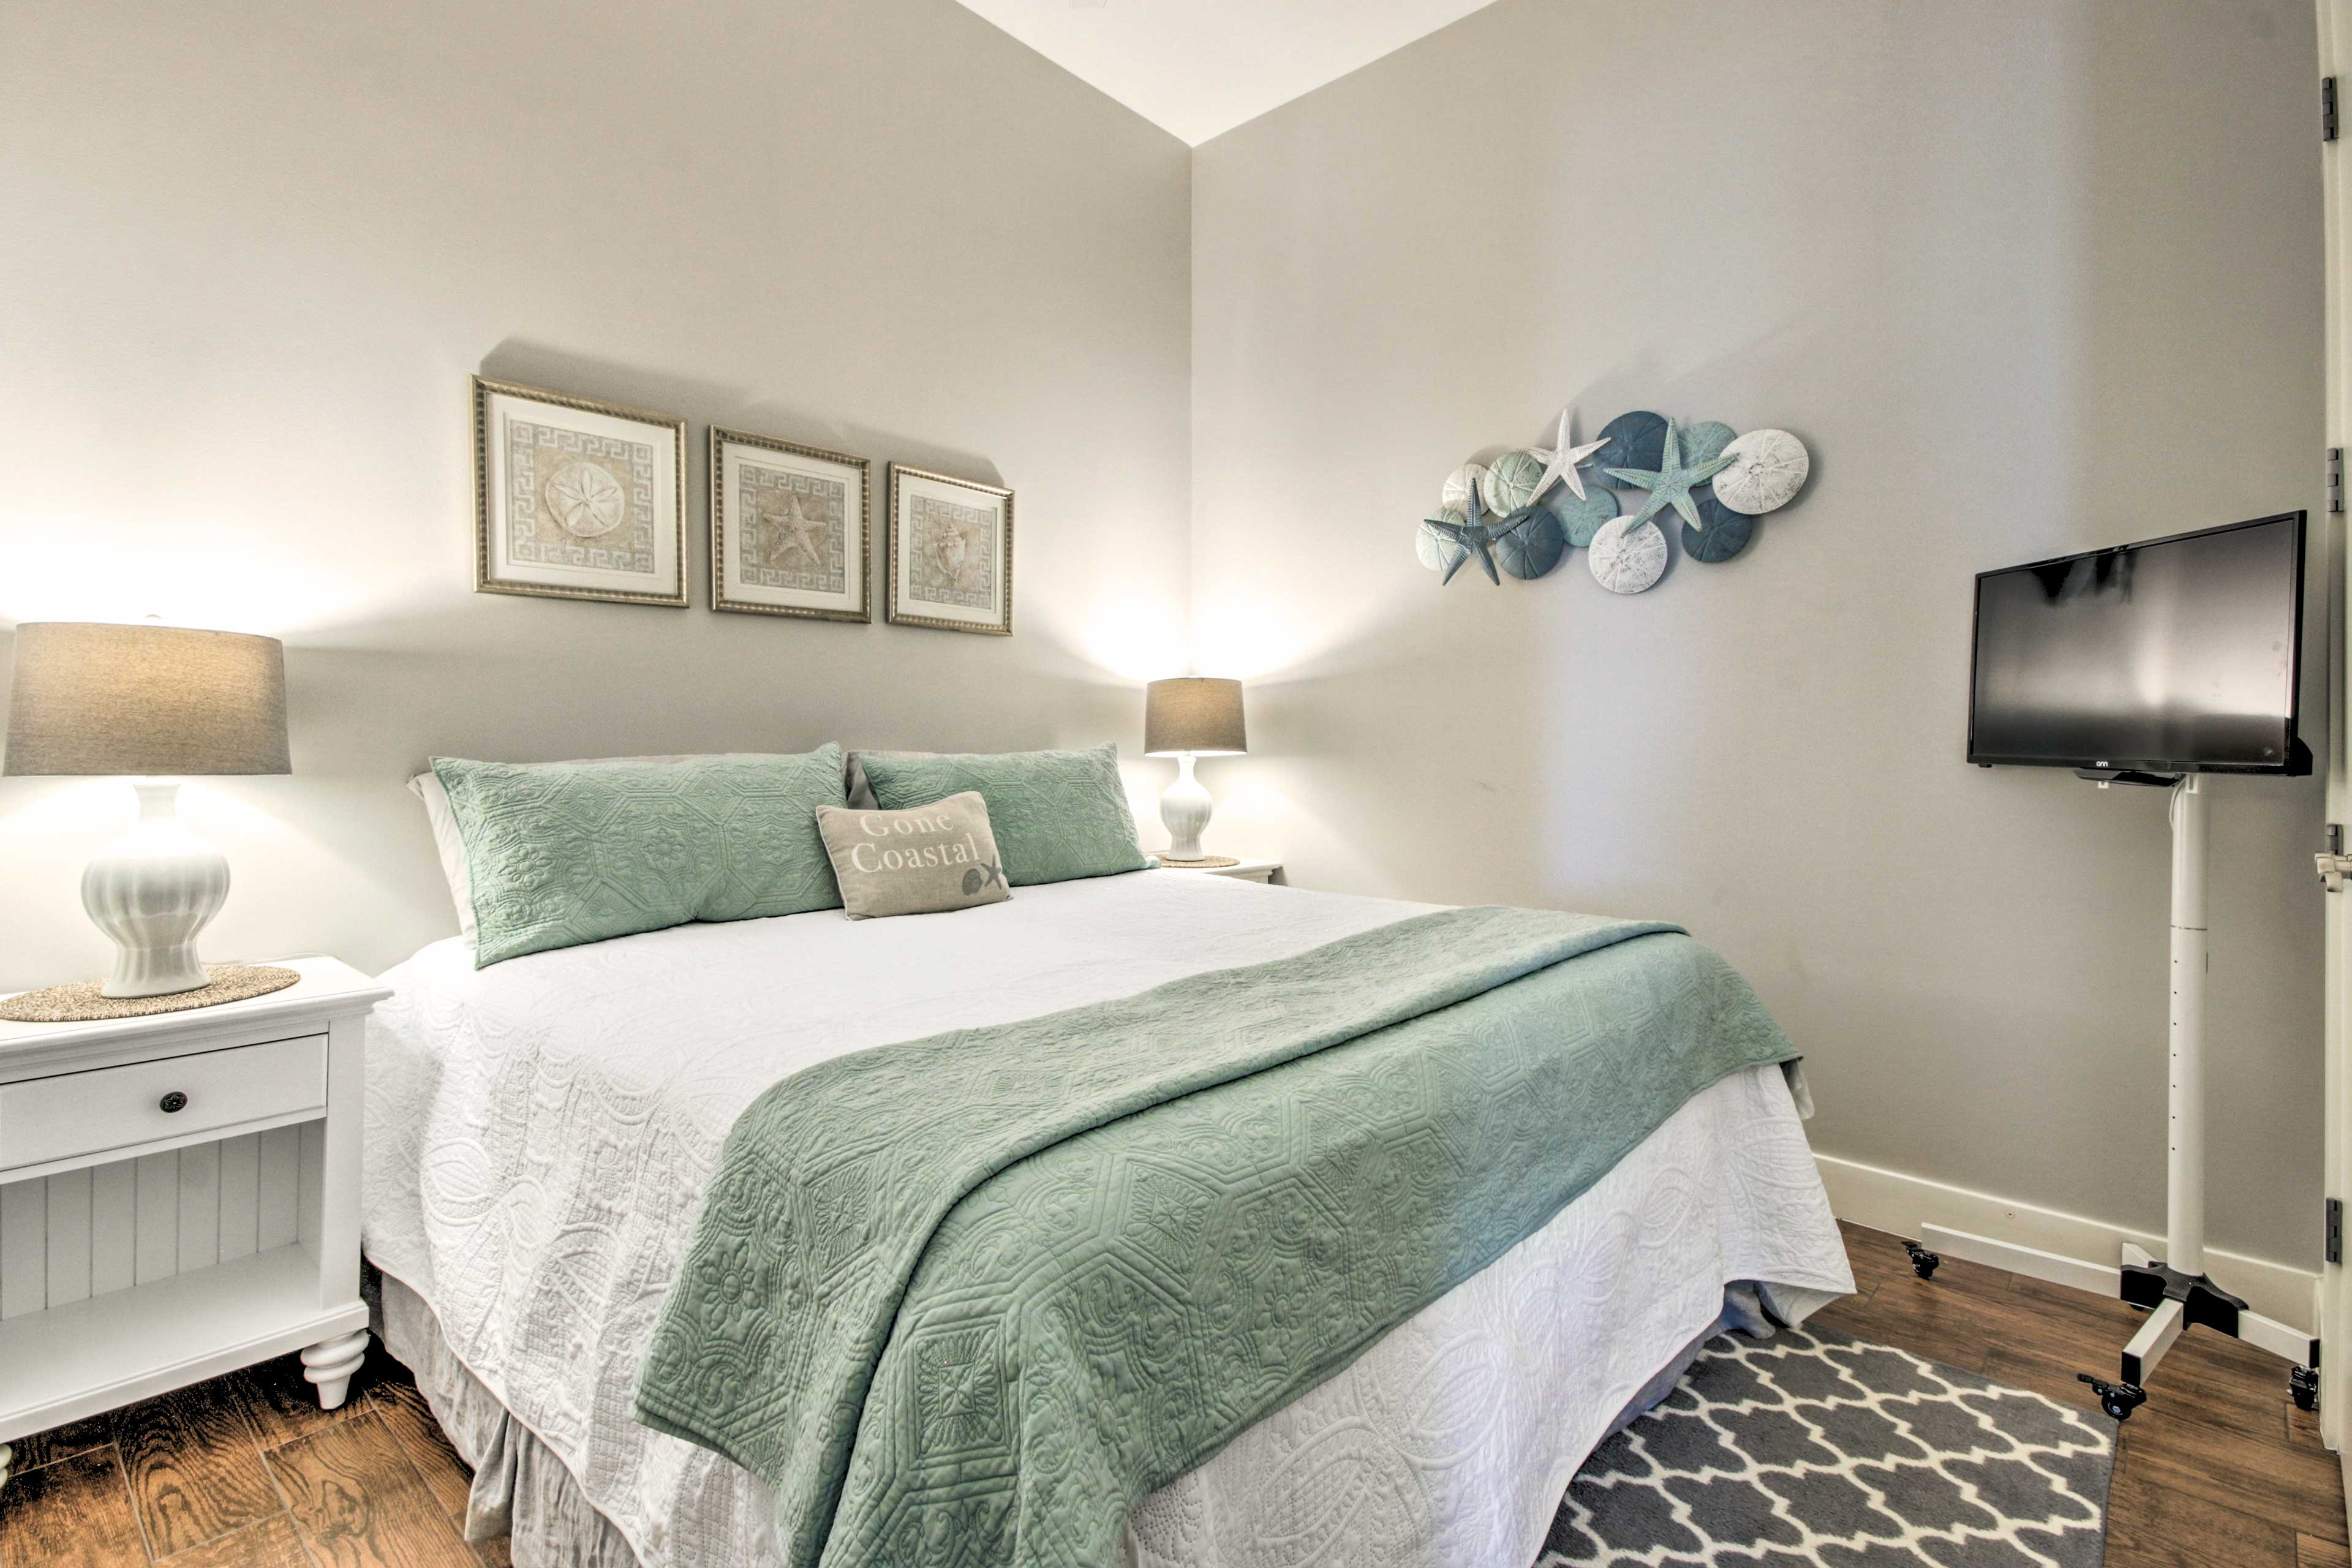 Two additional guests can make themselves comfortable in the second bedroom.